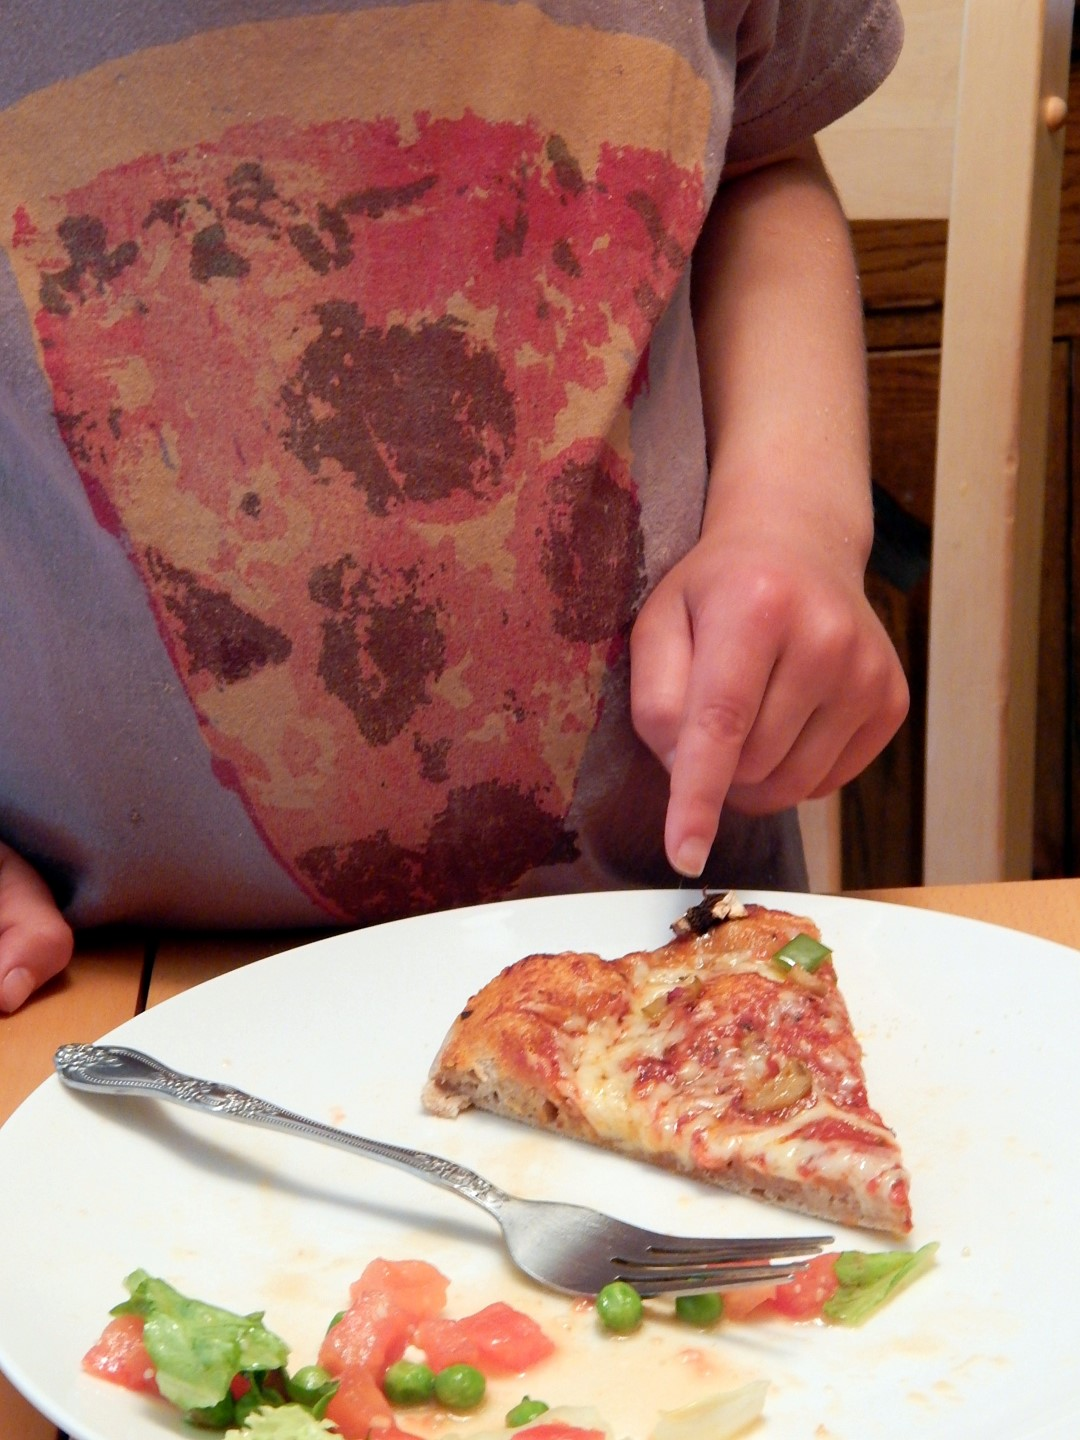 Child pointing to a slice of pizza